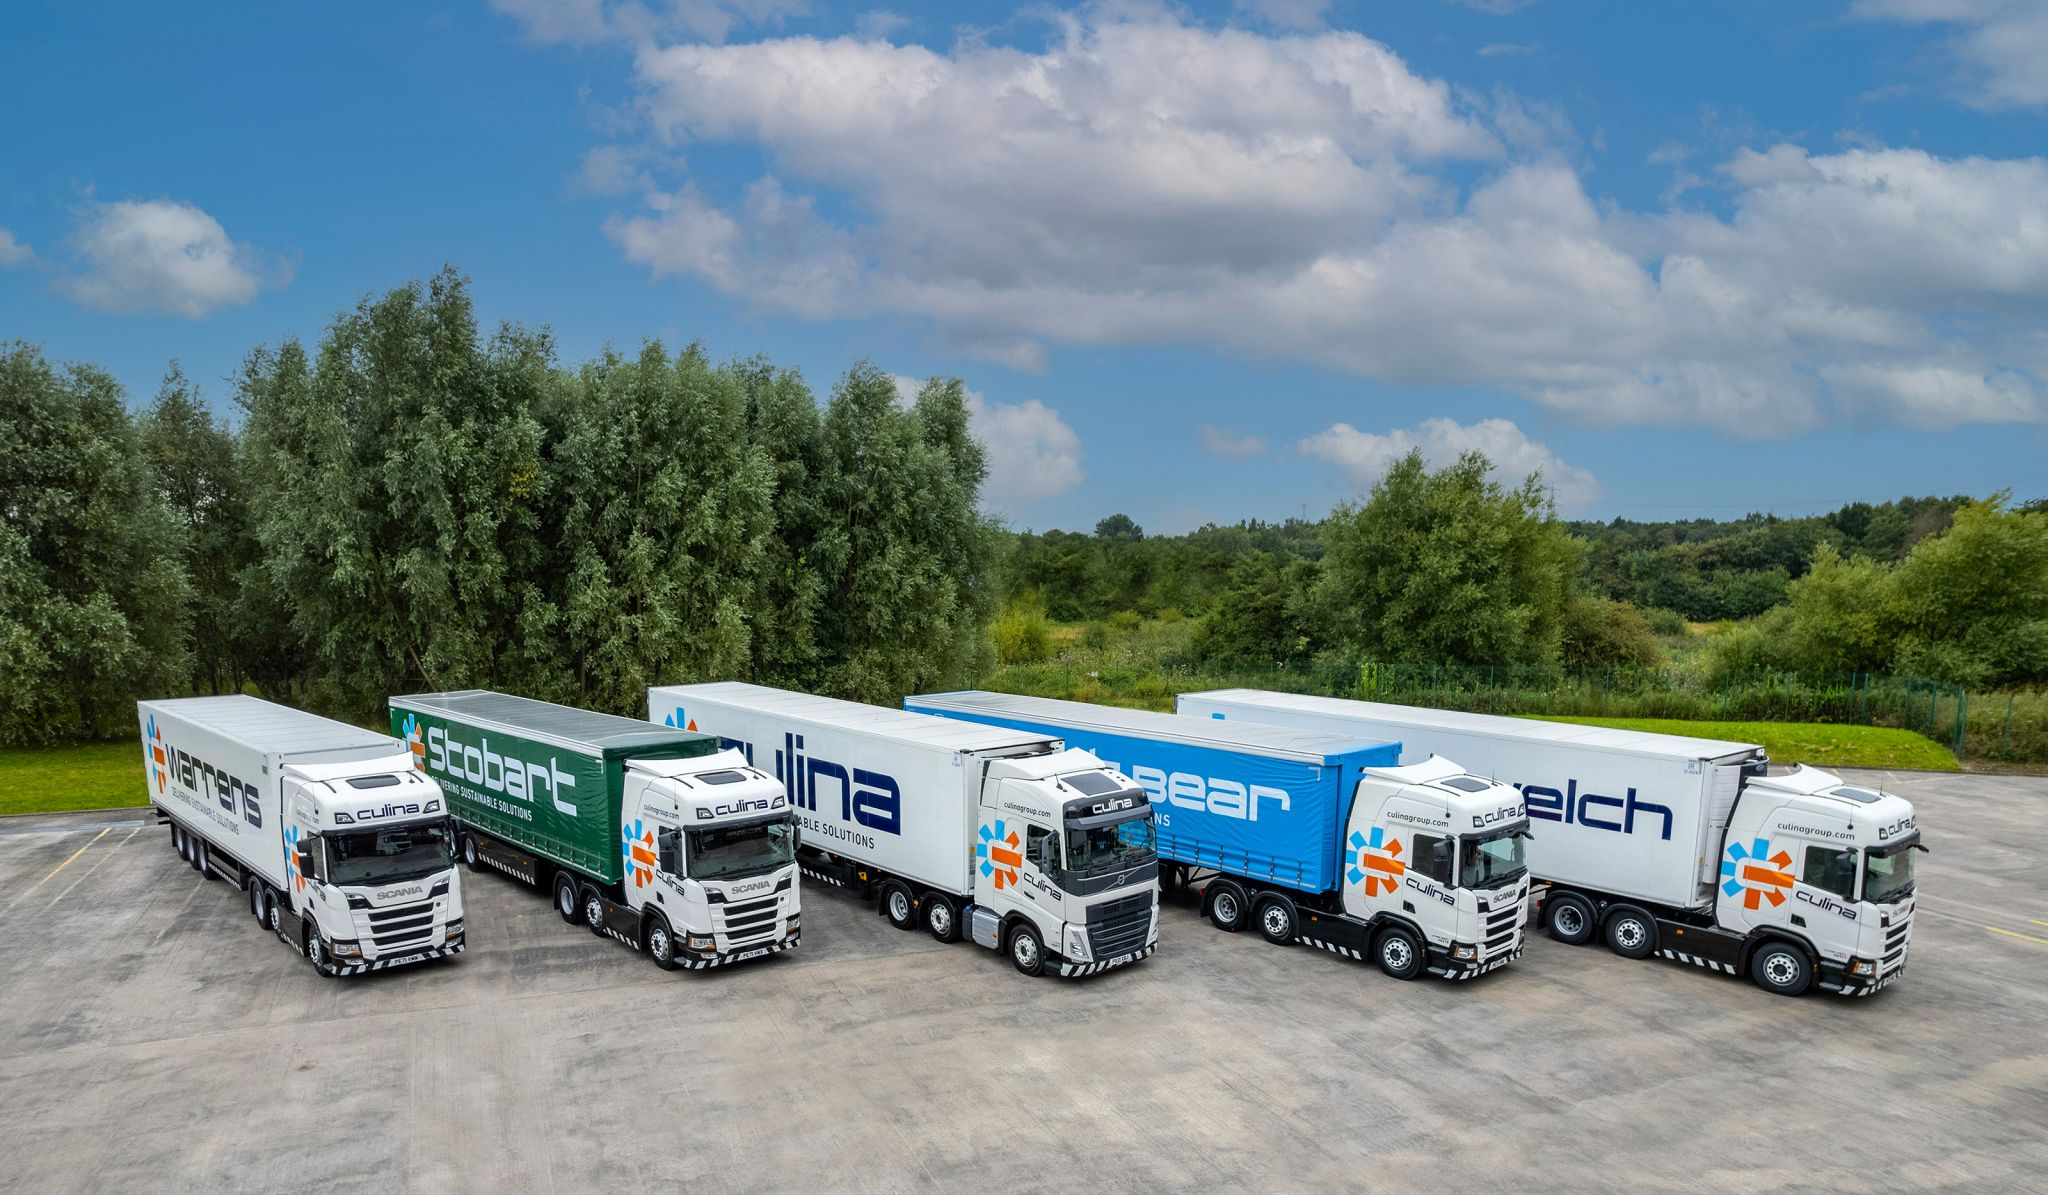 New look for Stobart trucks and trailers following Culina acquisition